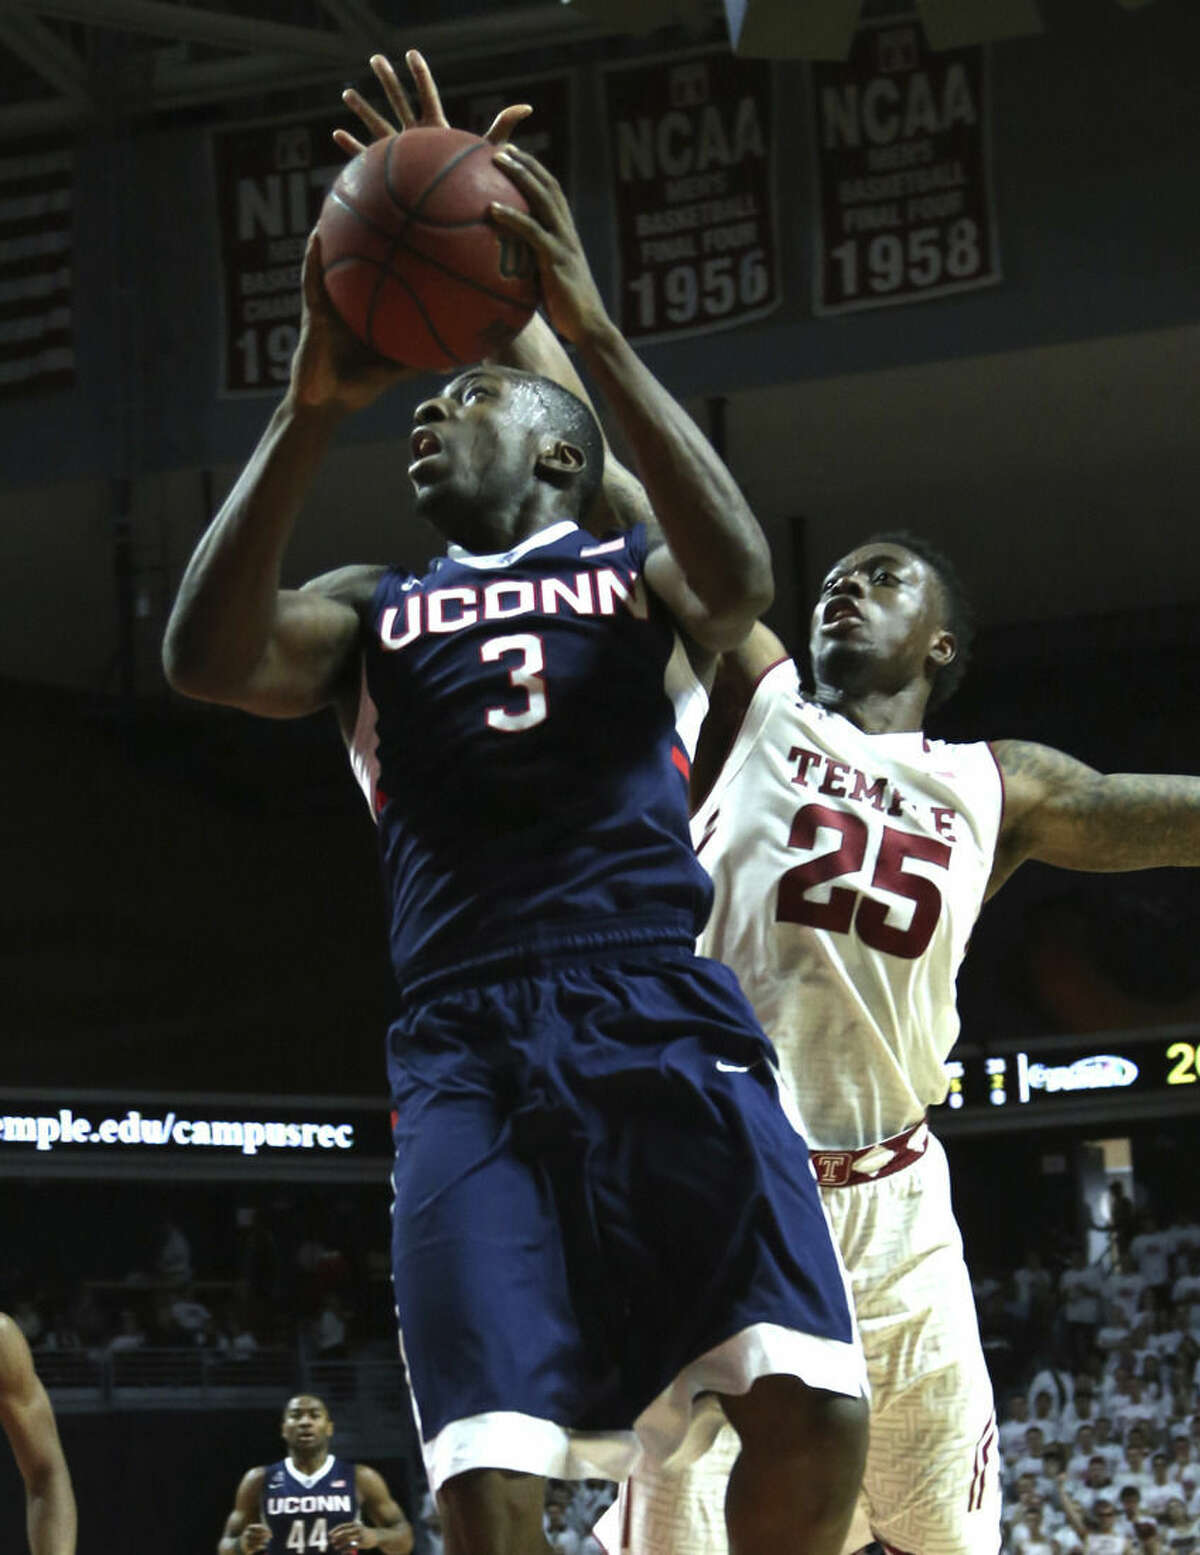 Connecticut guard Terrence Samuel (3) drives to the basket as Temple guard Quenton DeCosey (25) follows in the first half of an NCAA college basketball game, Saturday, March 7, 2015, in Philadelphia. (AP Photo/Laurence Kesterson)